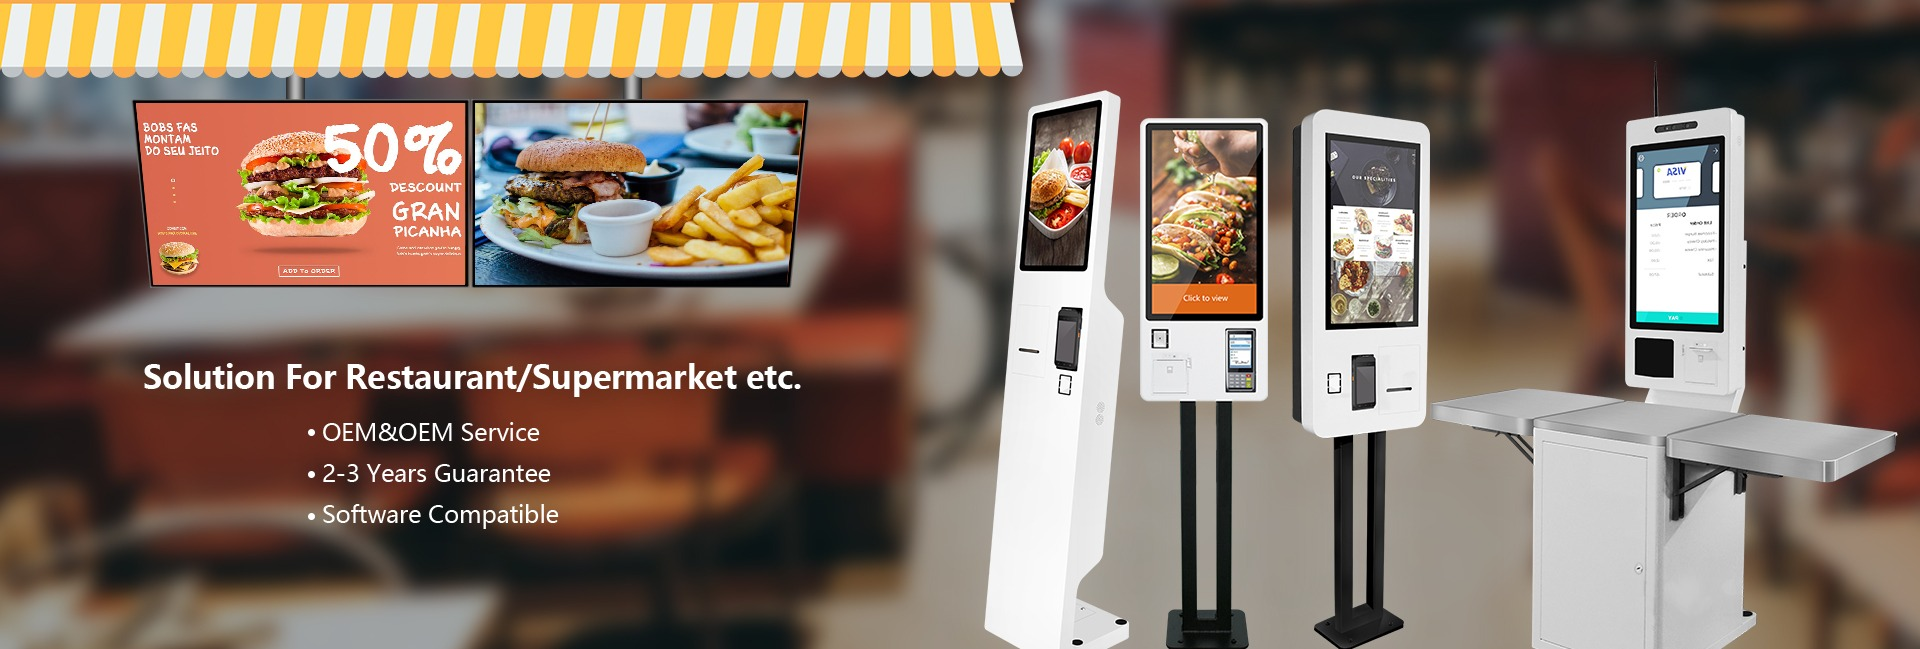 Digital Screens and self order kiosk